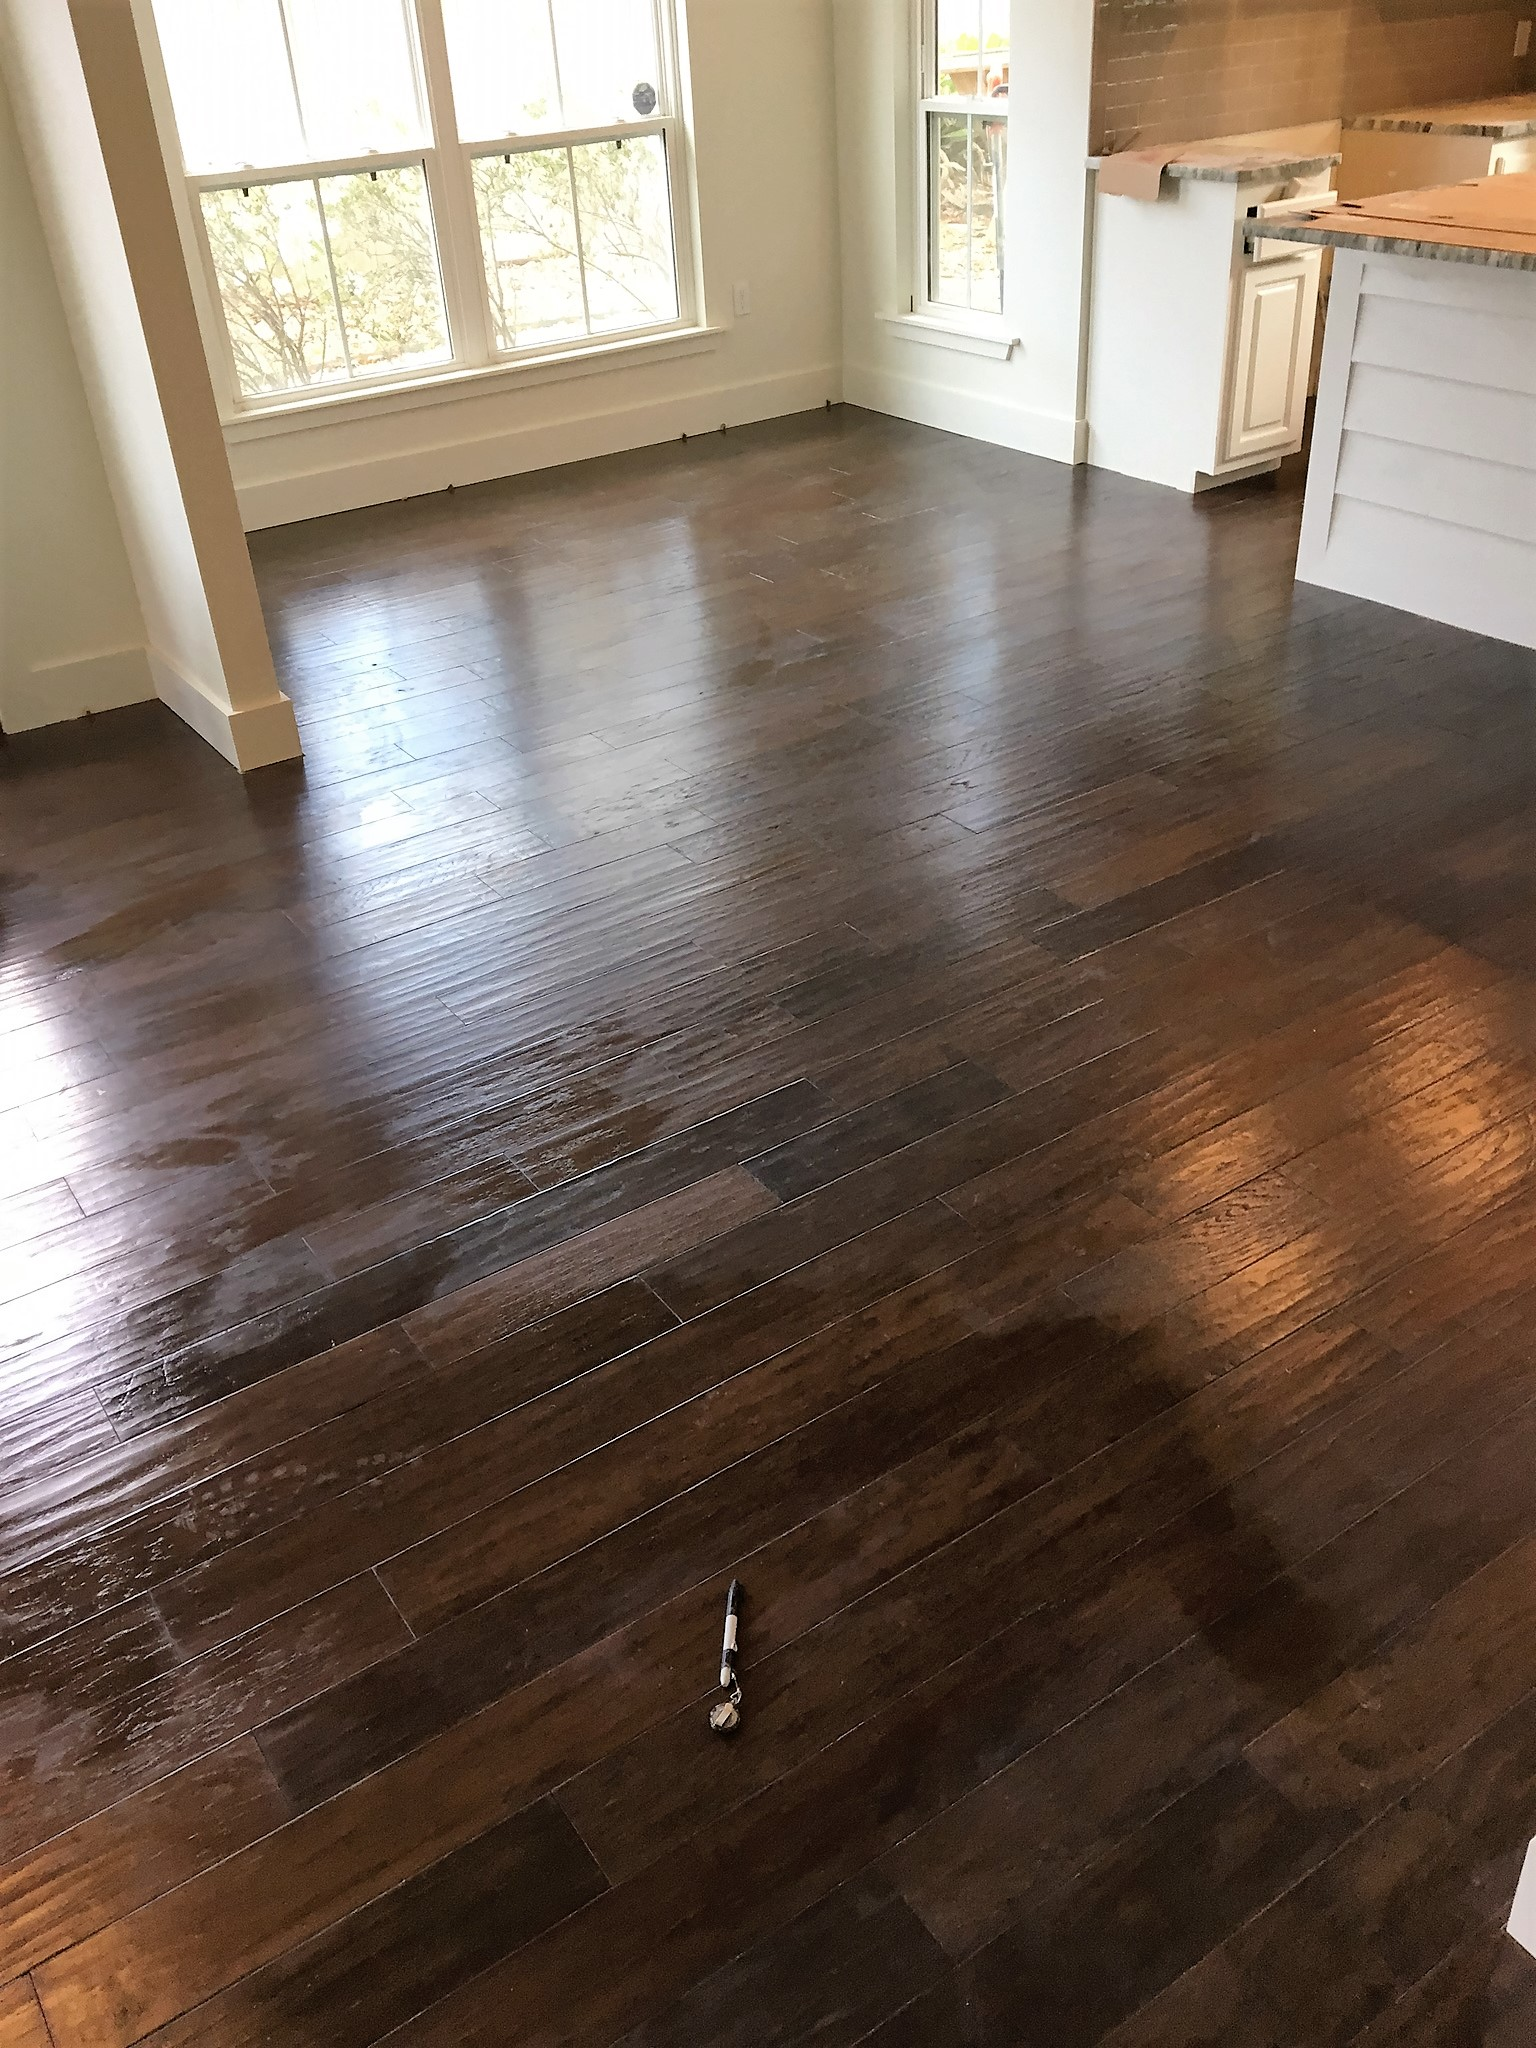 Hardwood Floors refinished